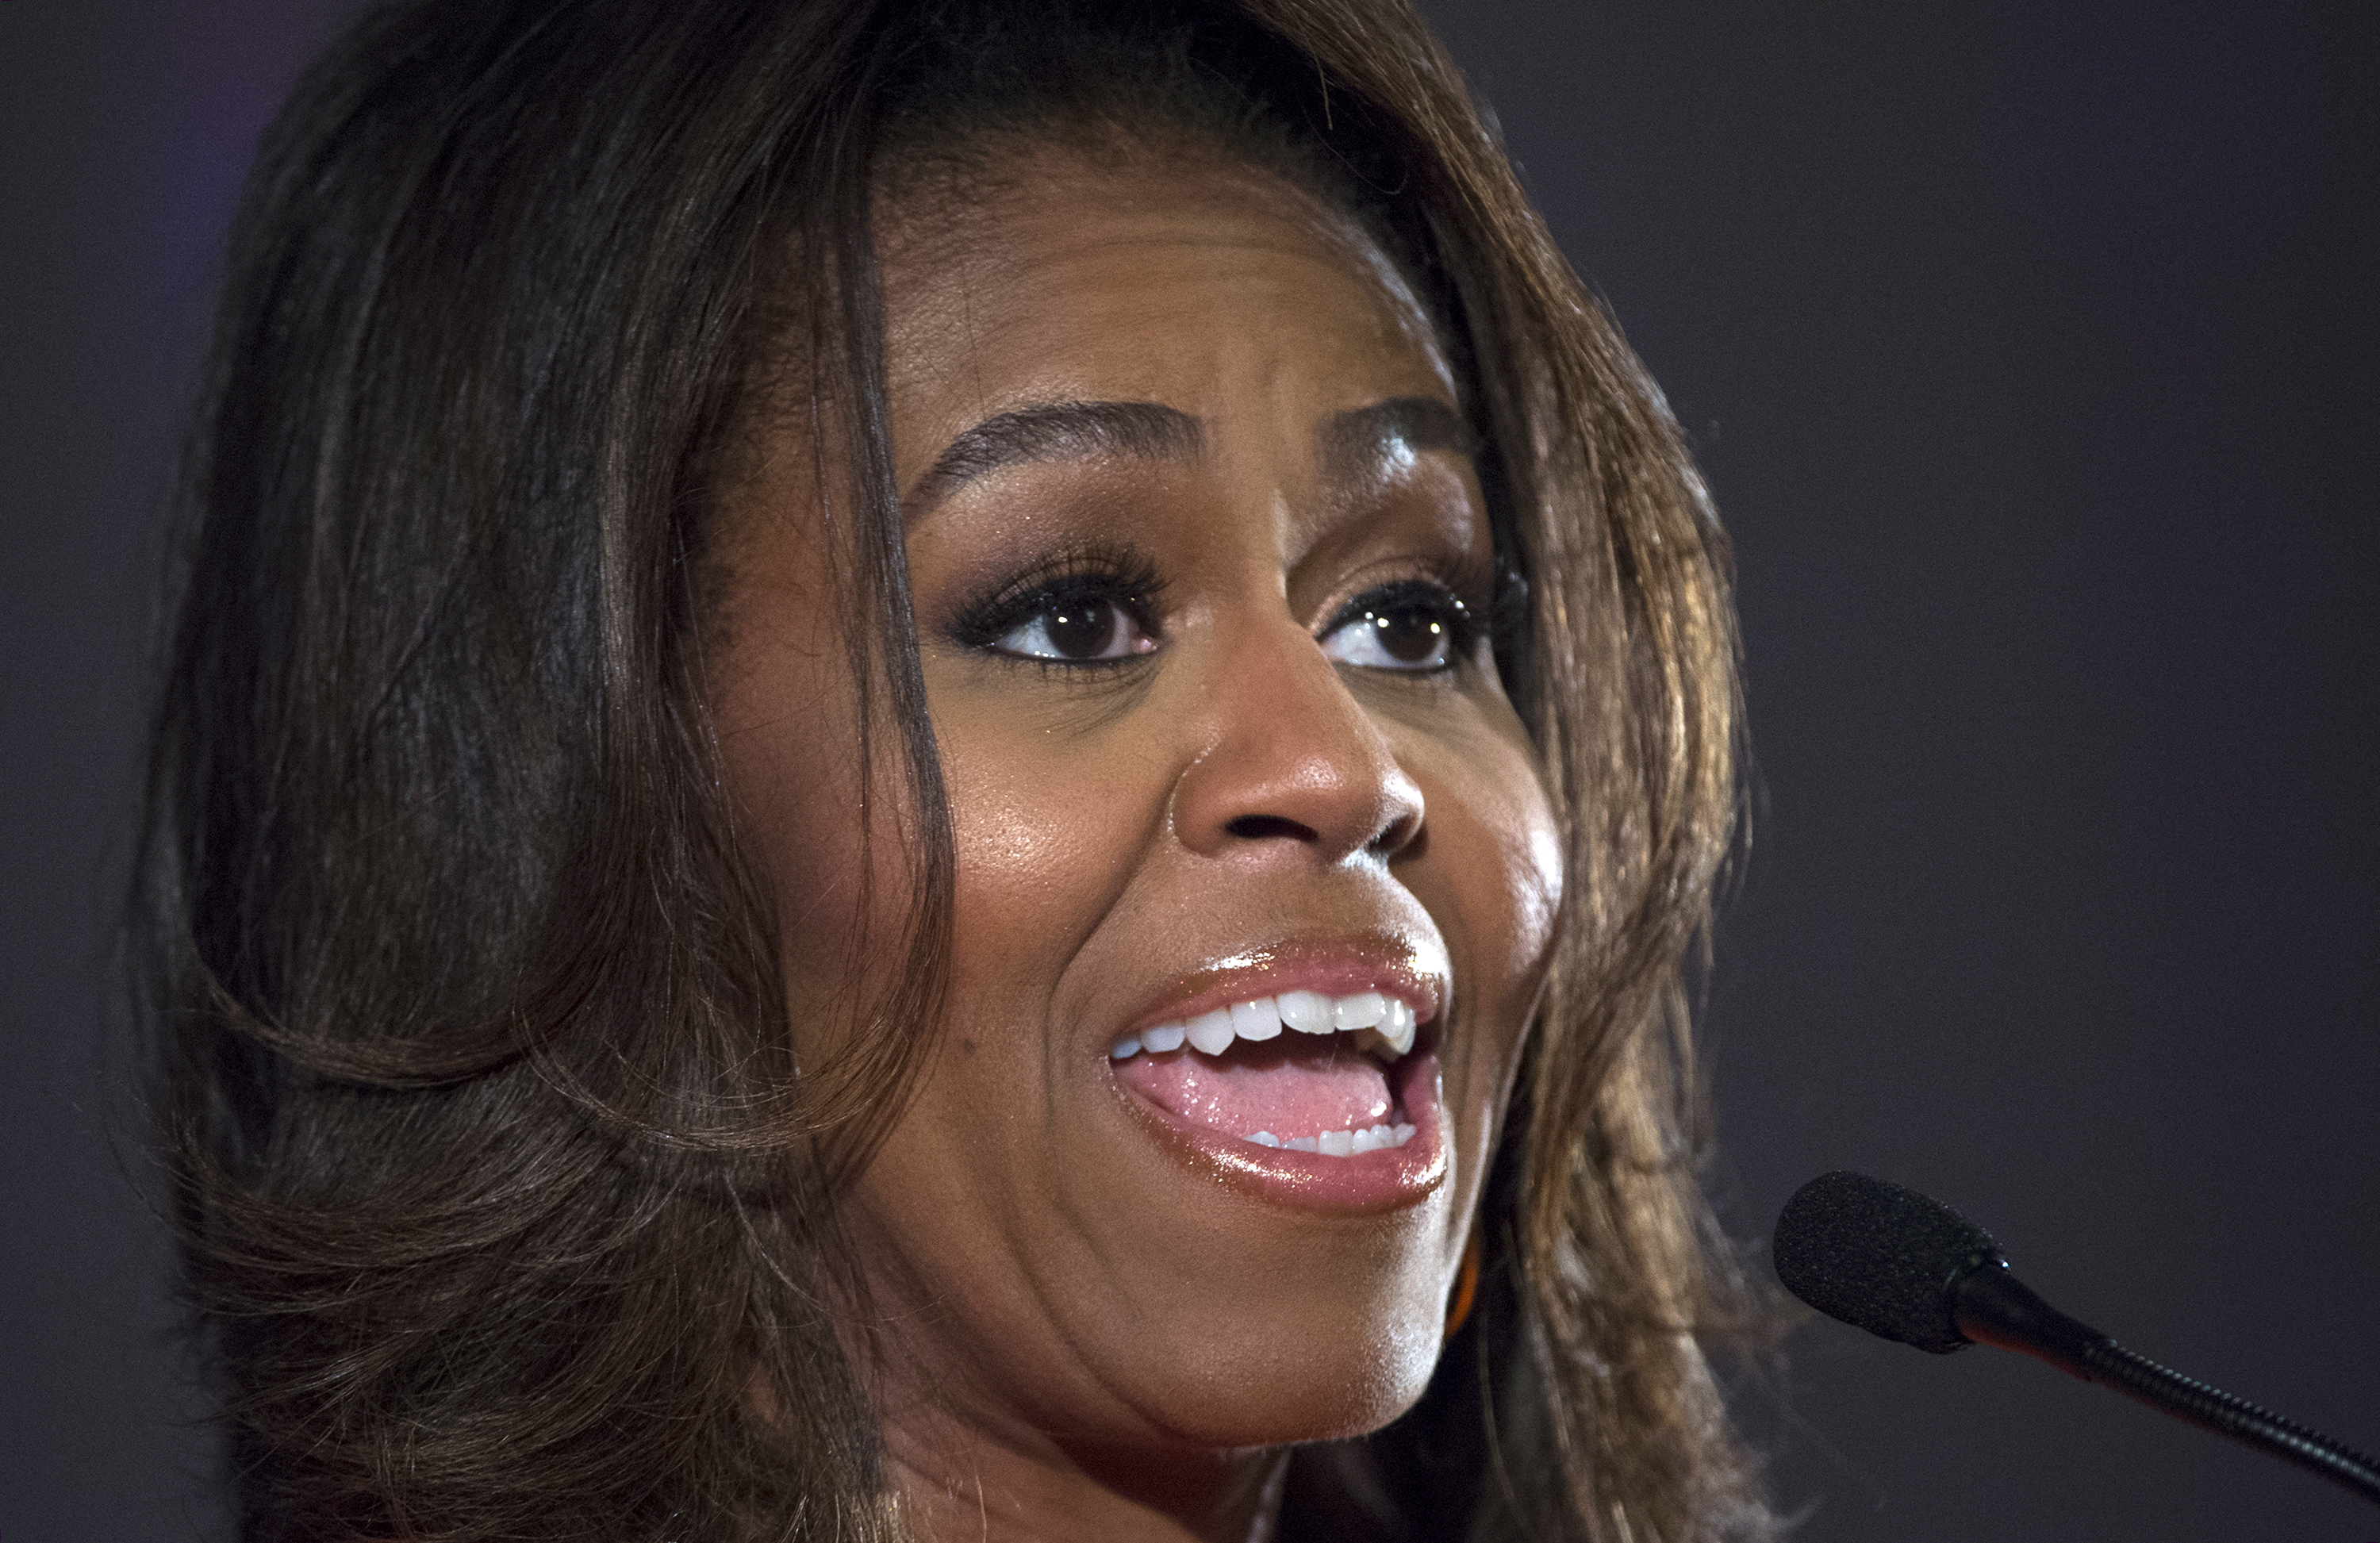 michelle obama anti american essay Enjoy the best michelle obama quotes at brainyquote quotations by michelle obama, american first lady, born january 17, 1964 share with your friends.